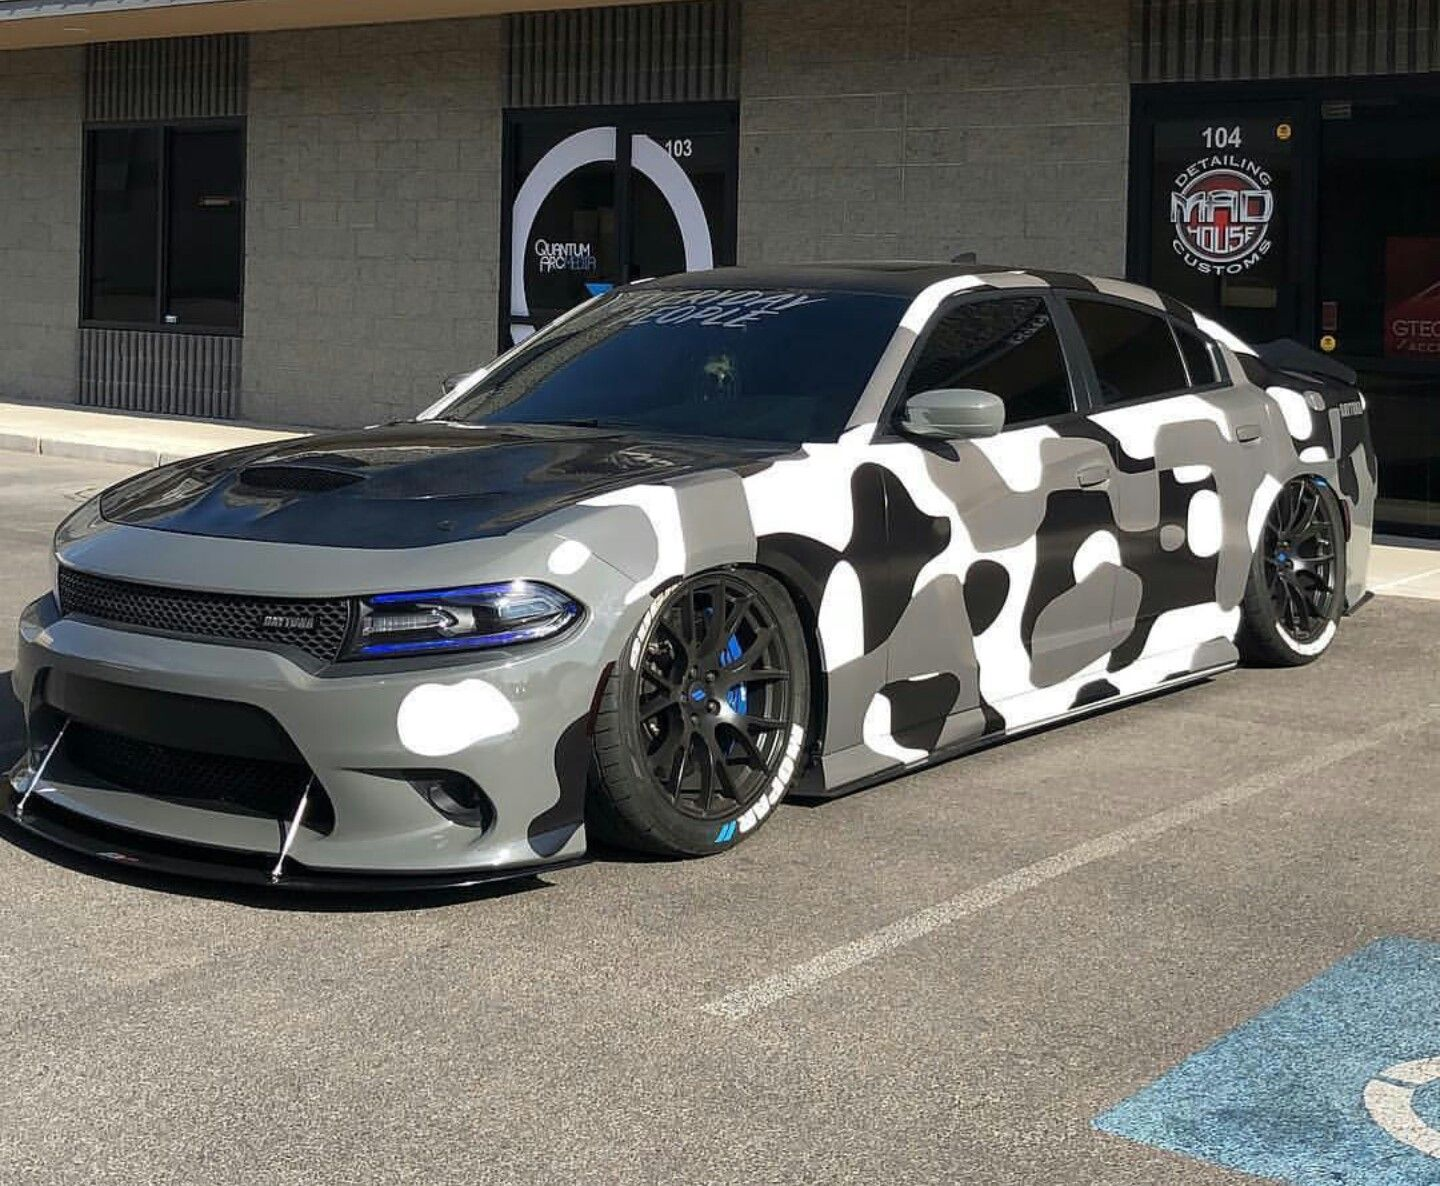 Camo Charger With Images Dodge Charger Hellcat Suv Cars